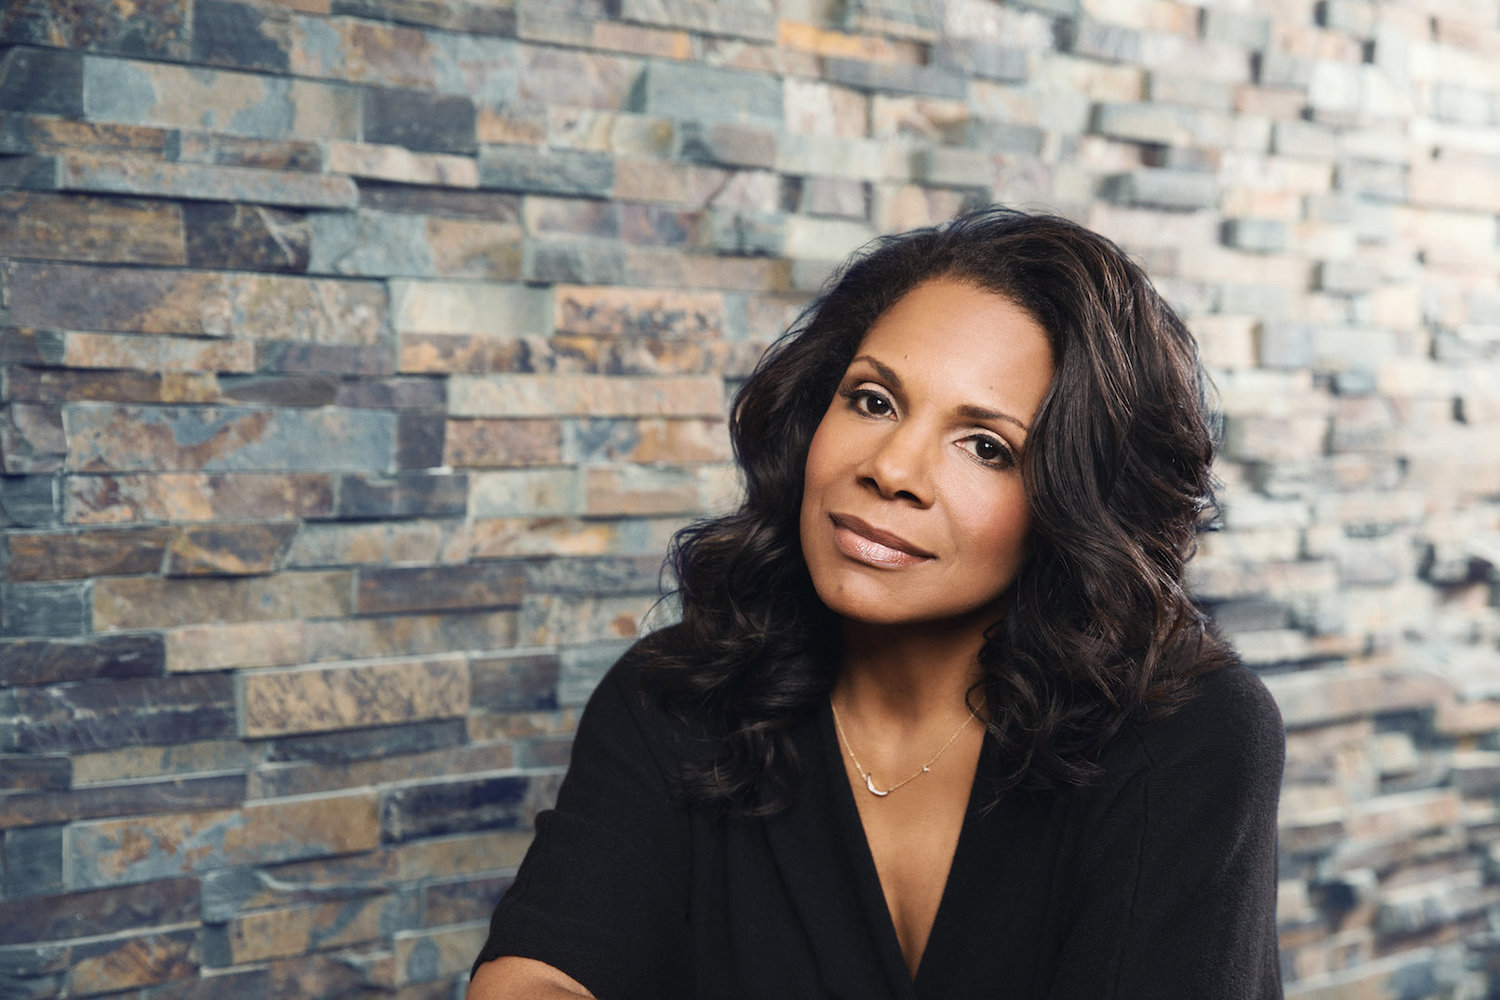 BWW Review: AUDRA MCDONALD delights and captivates Blossom audience